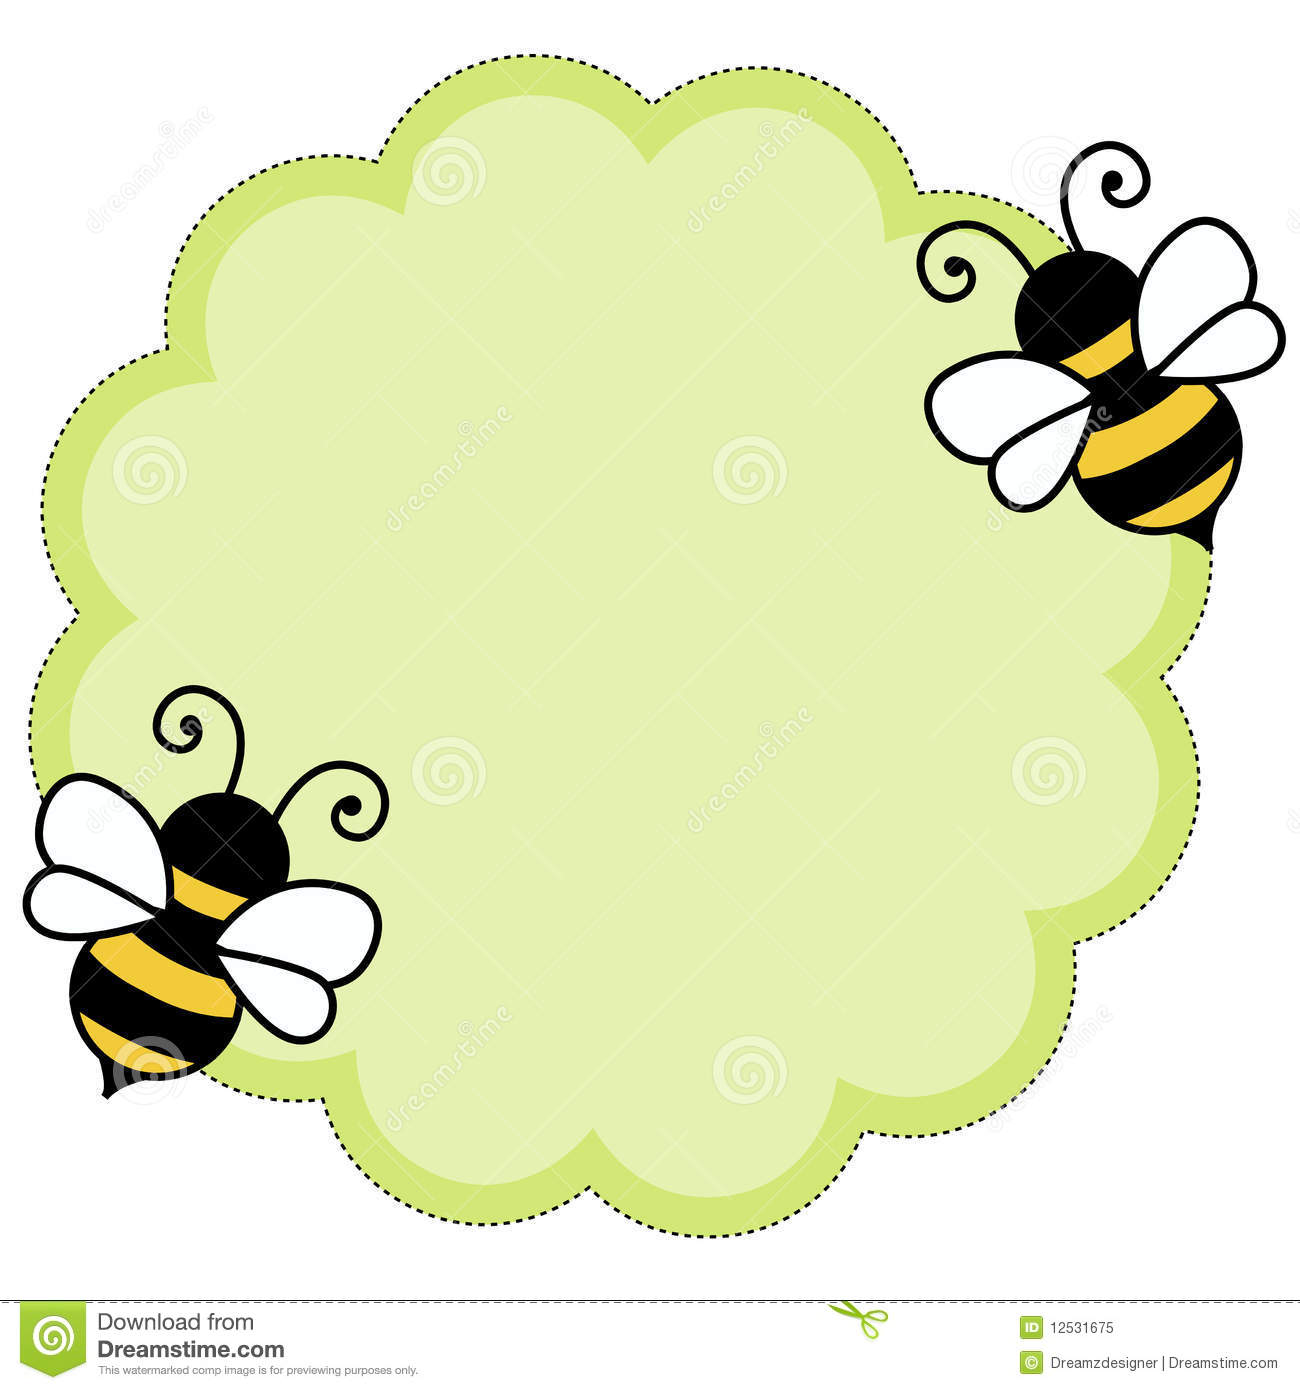 Bee note paper background